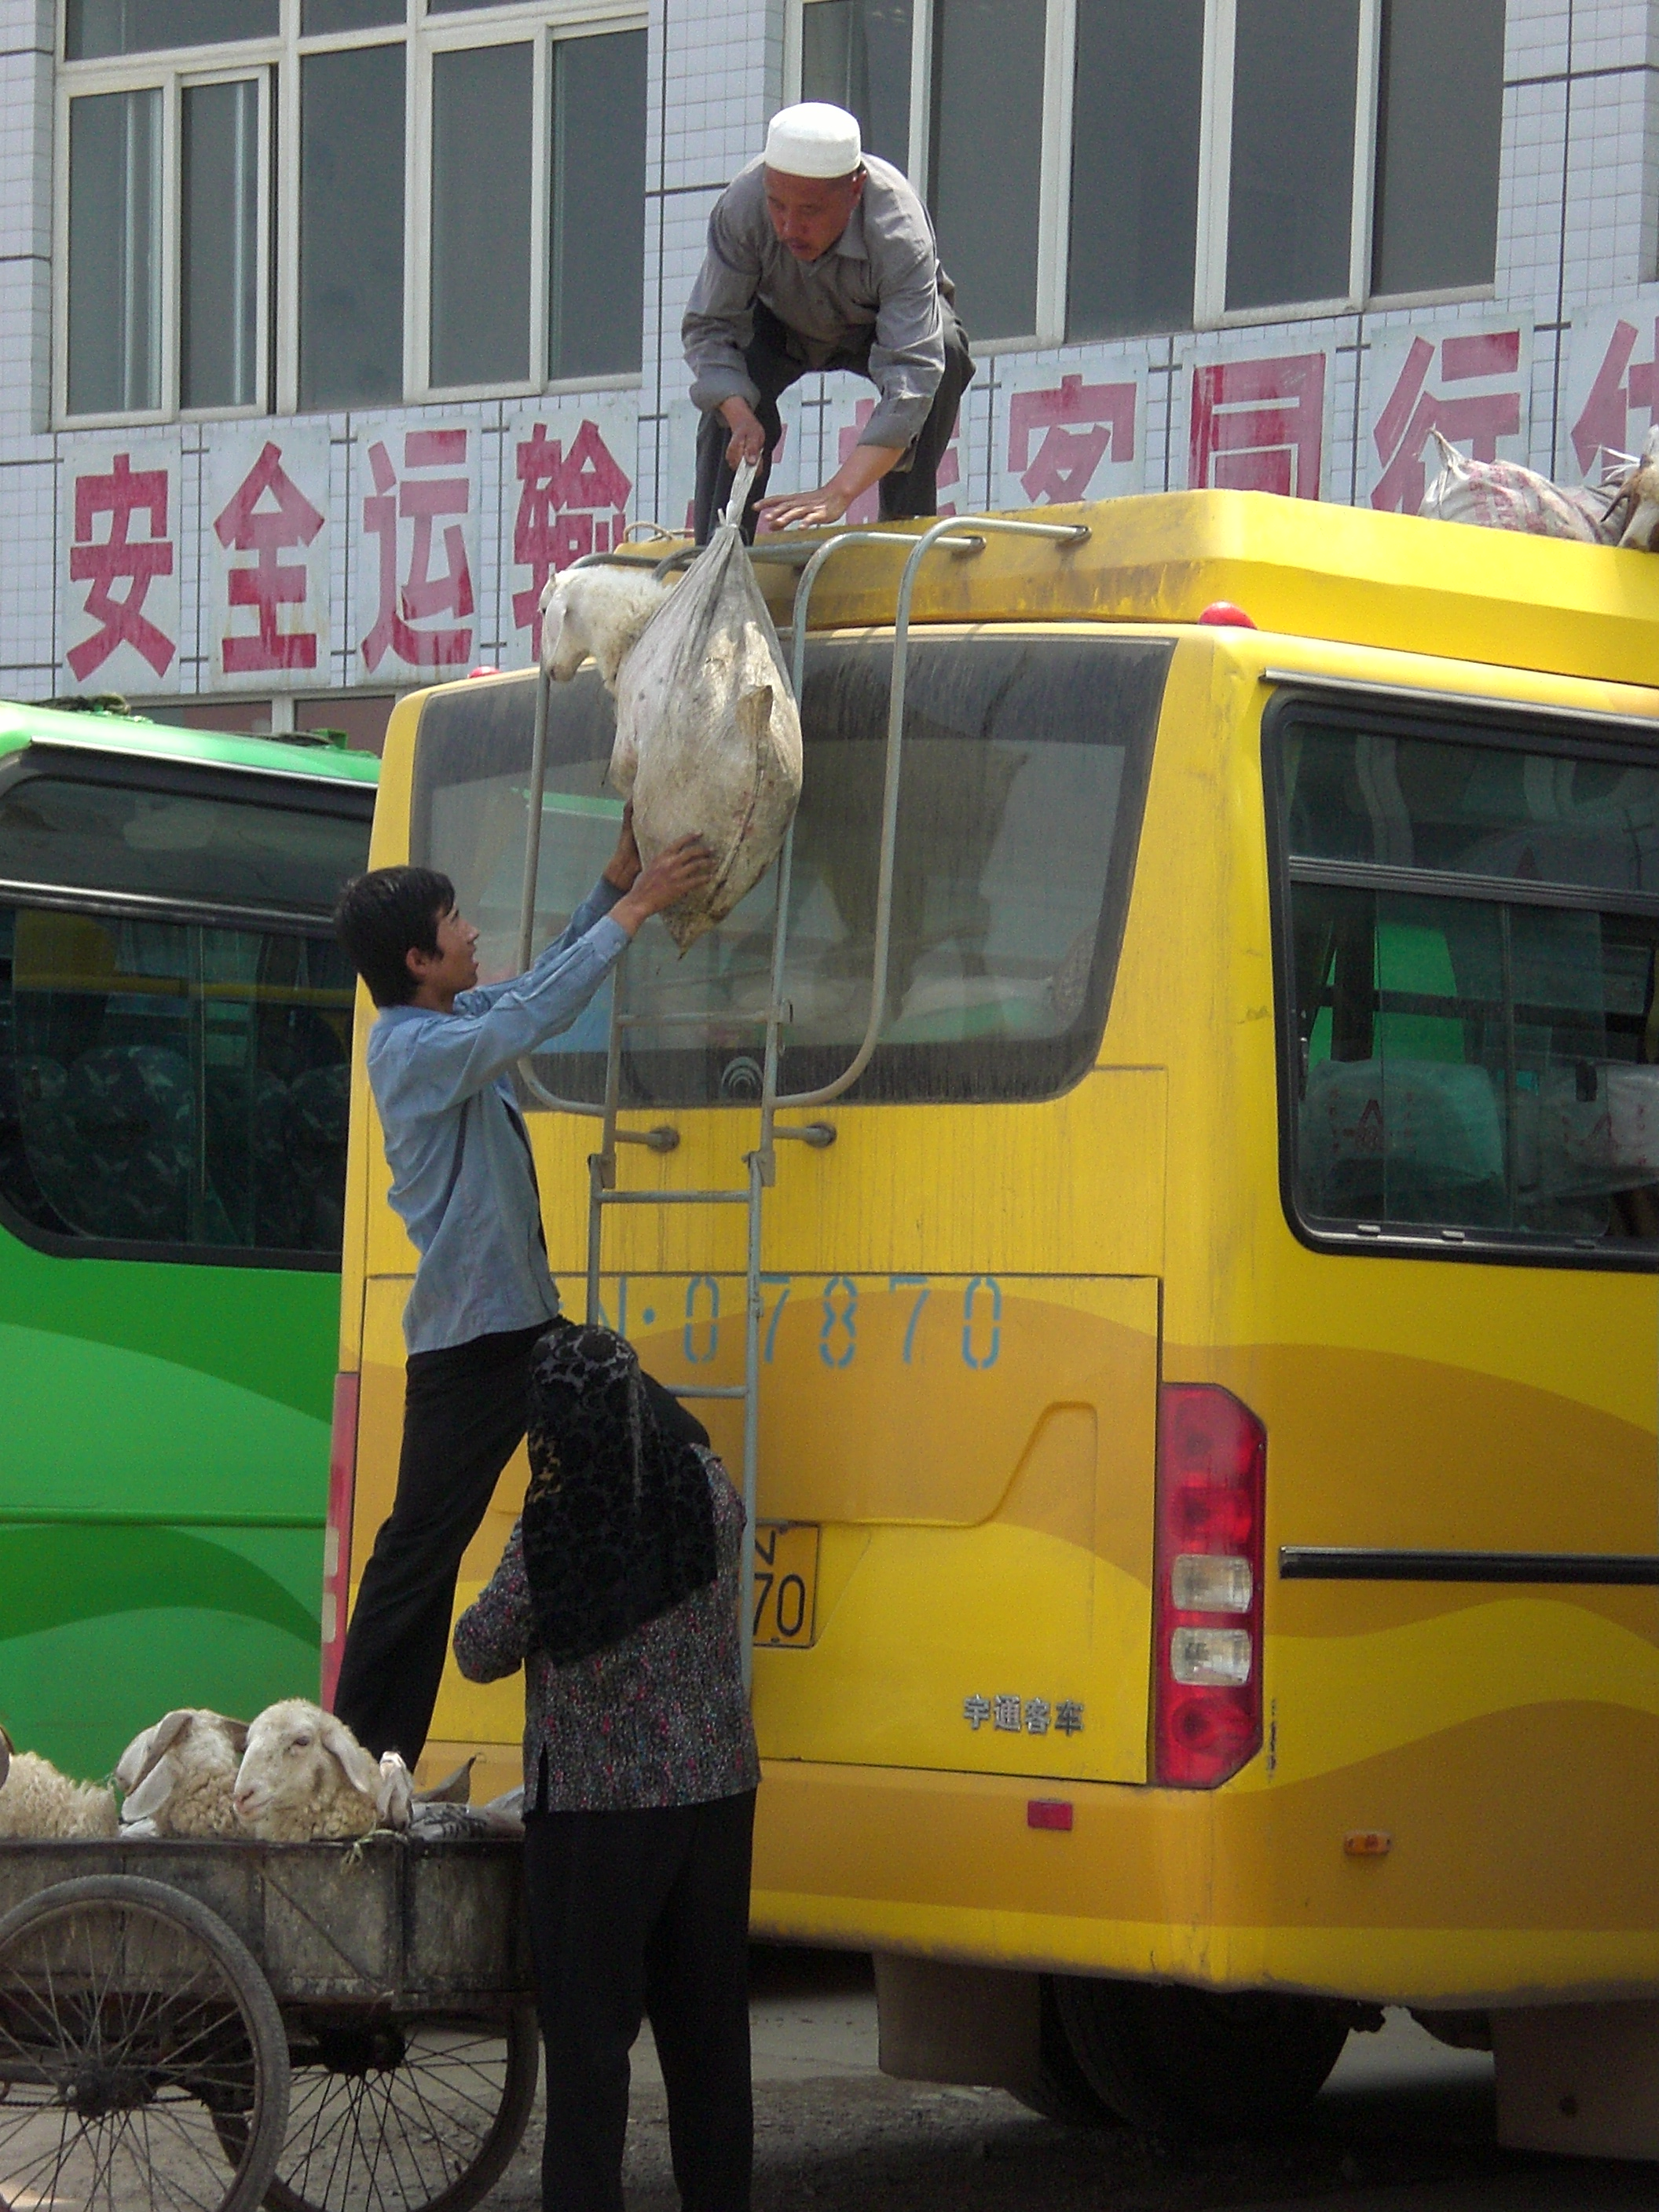 Asia challenges your perceptions in many ways - sheep being delivered via the roof of the bus we were about to board to a nearby town!